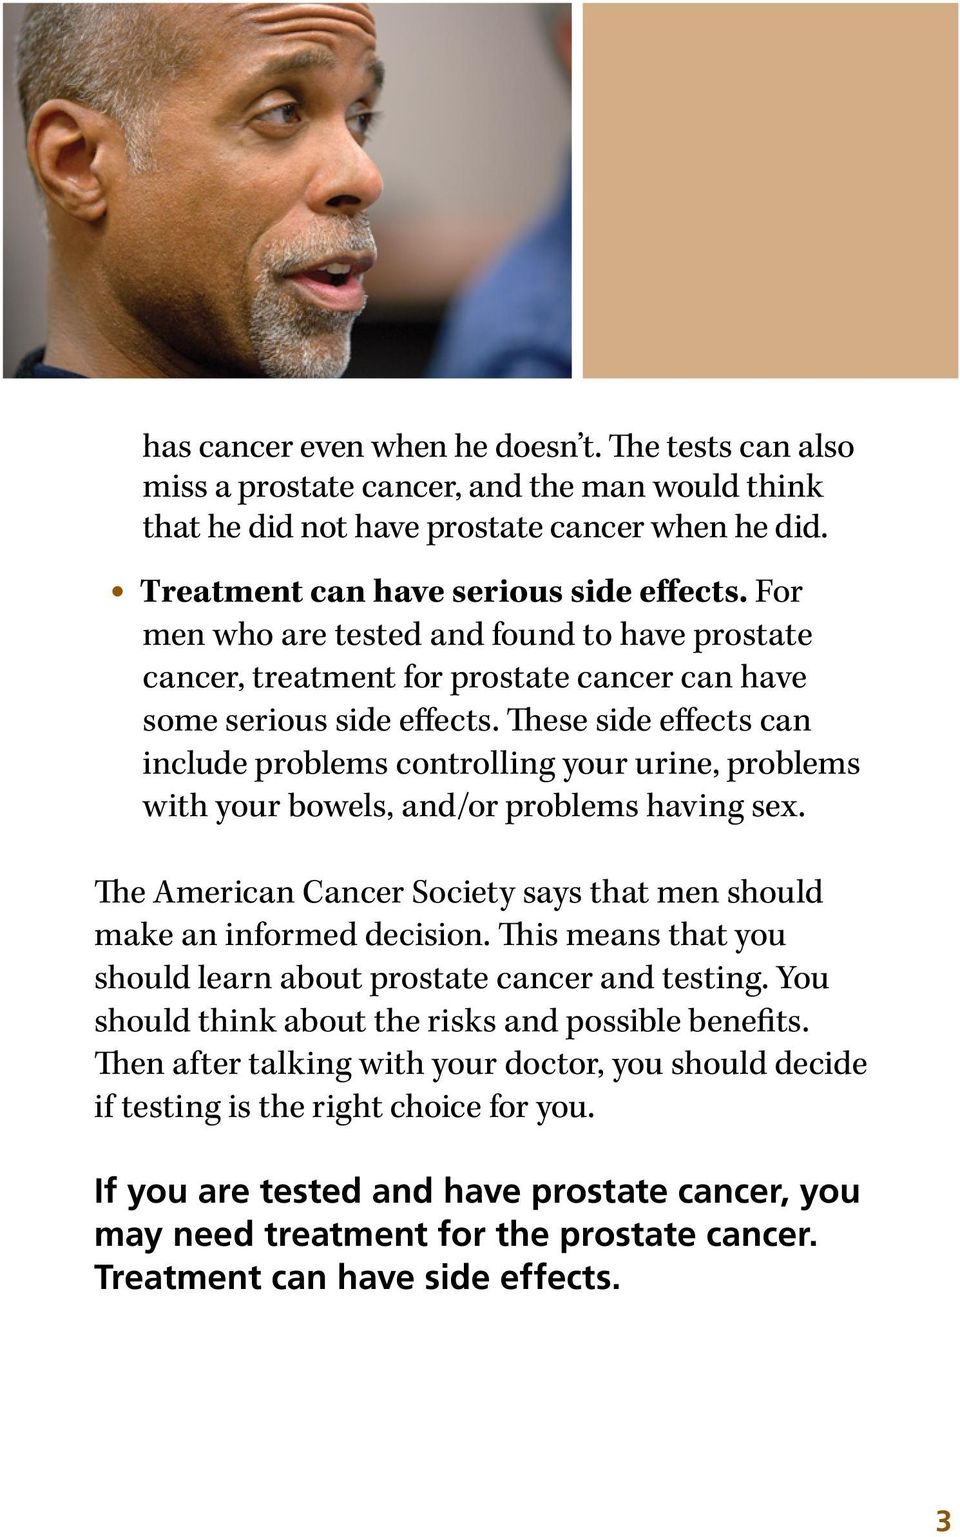 These side effects can include problems controlling your urine, problems with your bowels, and/or problems having sex. The American Cancer Society says that men should make an informed decision.